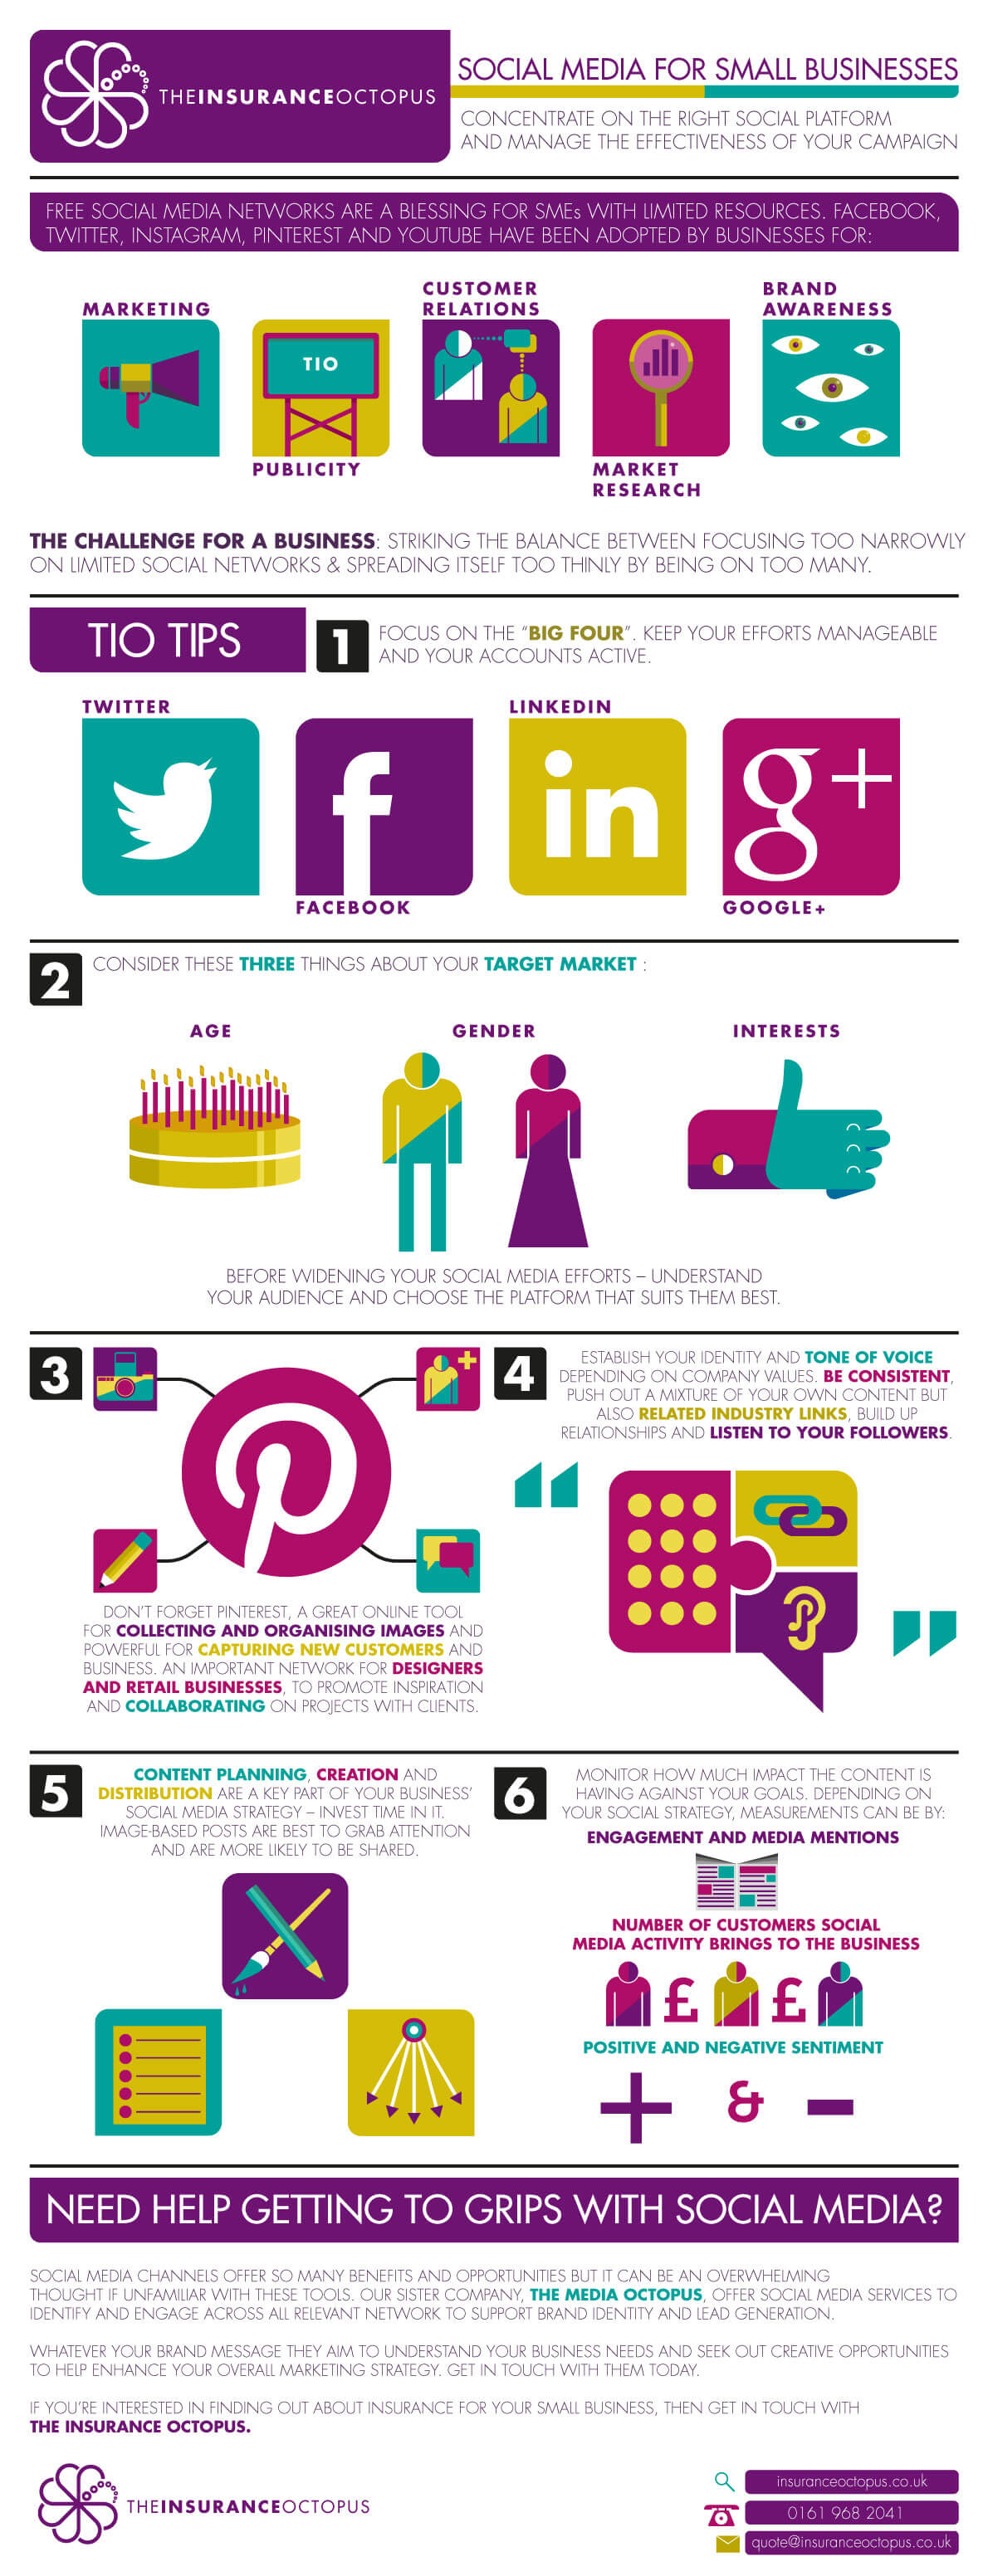 Small businesses: How to make the most out of your social media infographic